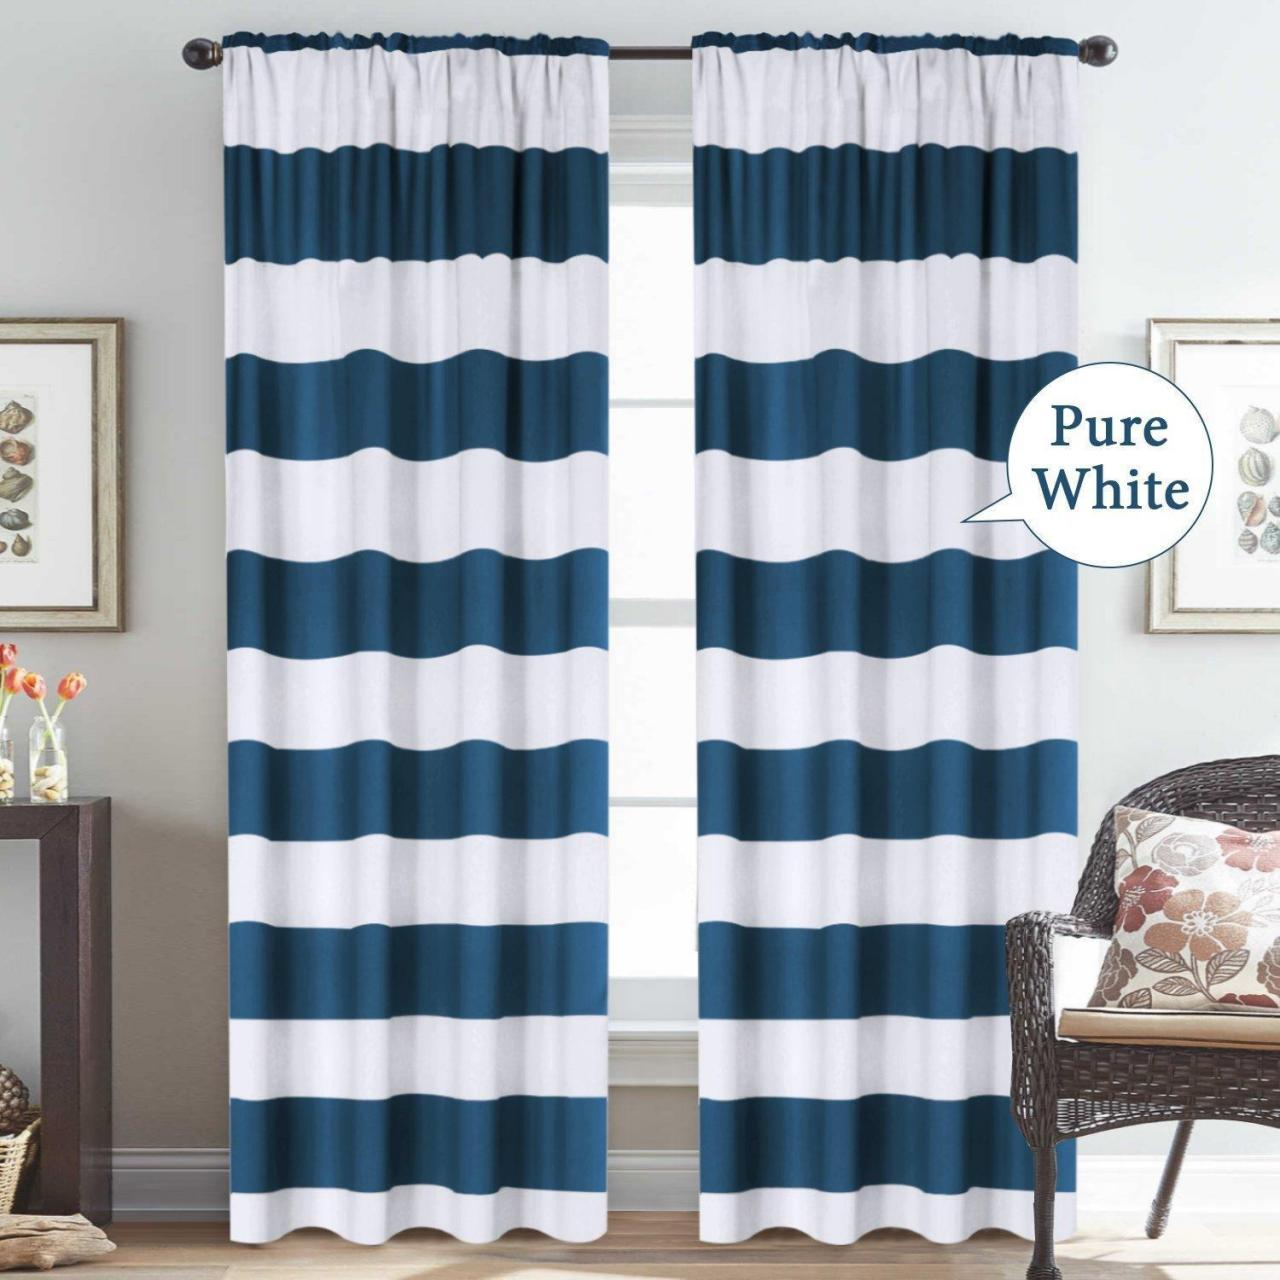 China Window Treatment Thermal Insulated Rod Pocket Room Darkening Striped Curtains Drapes for Bedroom/Liv on sale